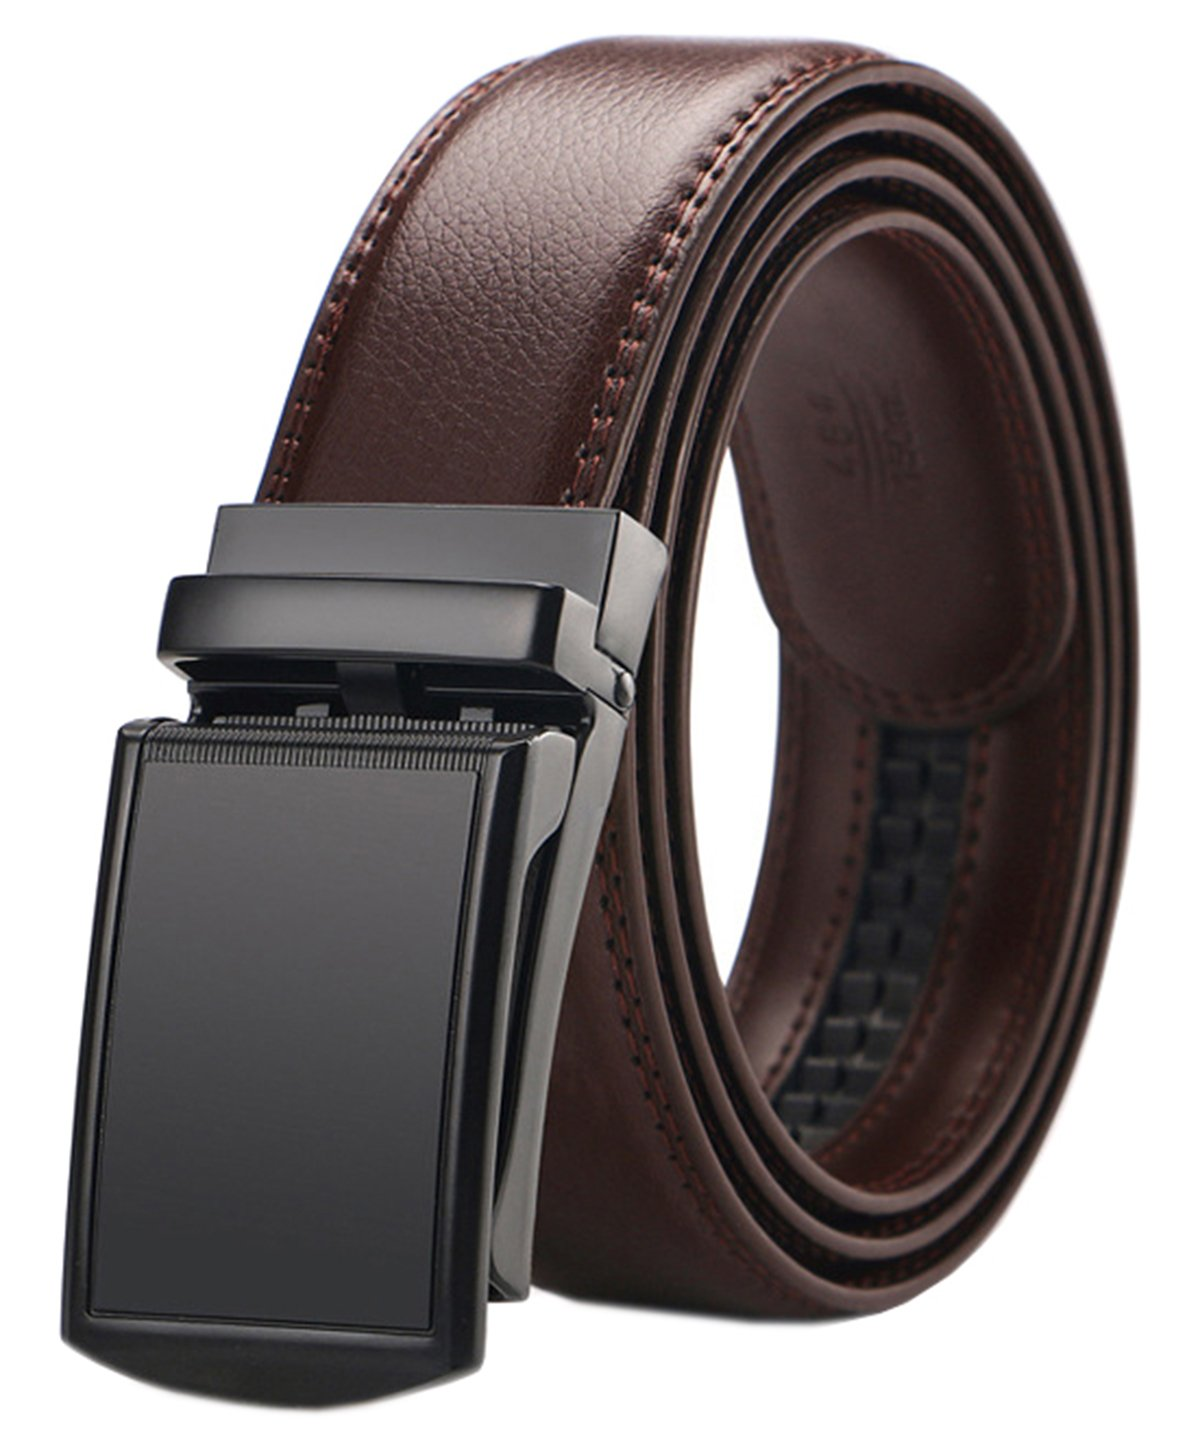 Mens Ratchet Slide Belts Leather Automatic Buckle gz01-pd